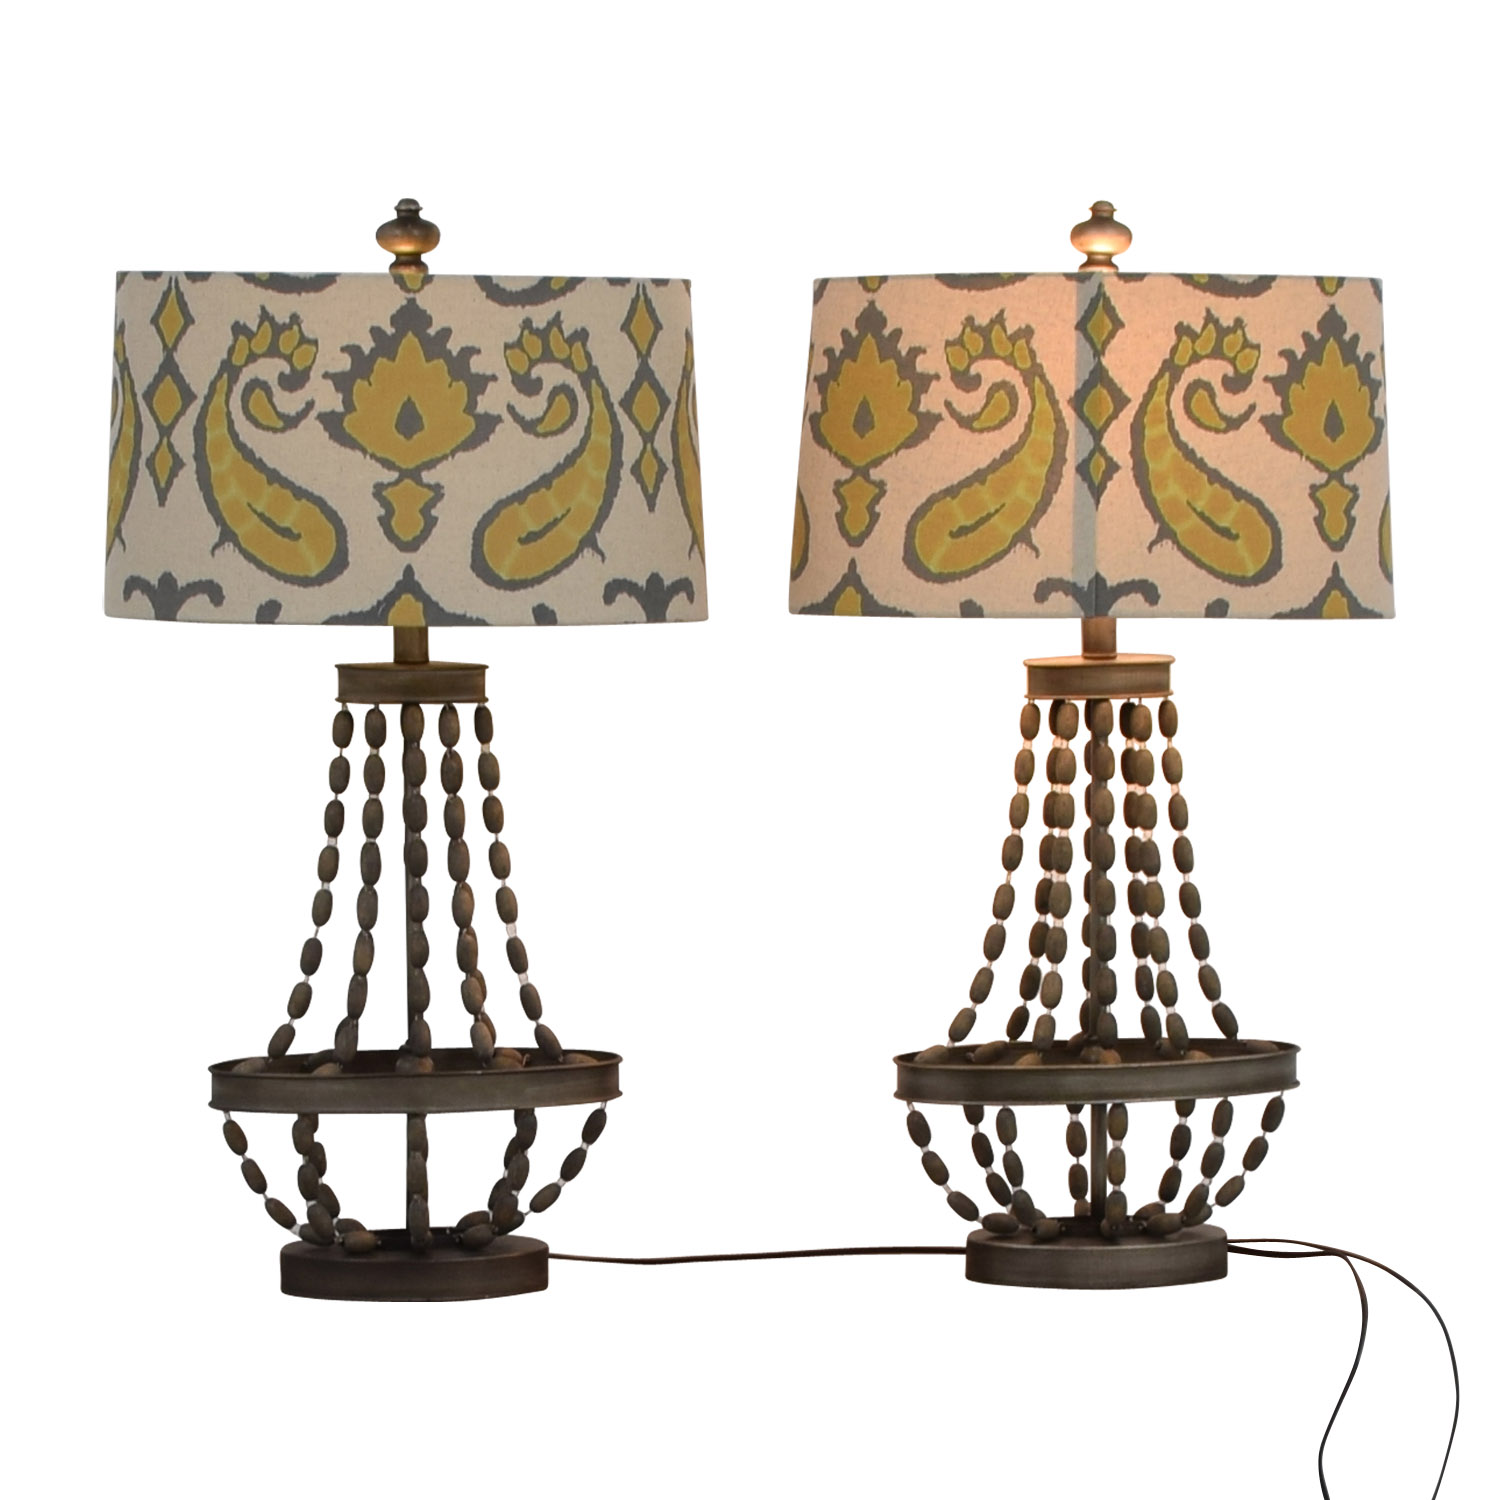 Pier 1 Imports Pier 1 Imports Beaded Lamps With Yellow Grey and White Shades second hand